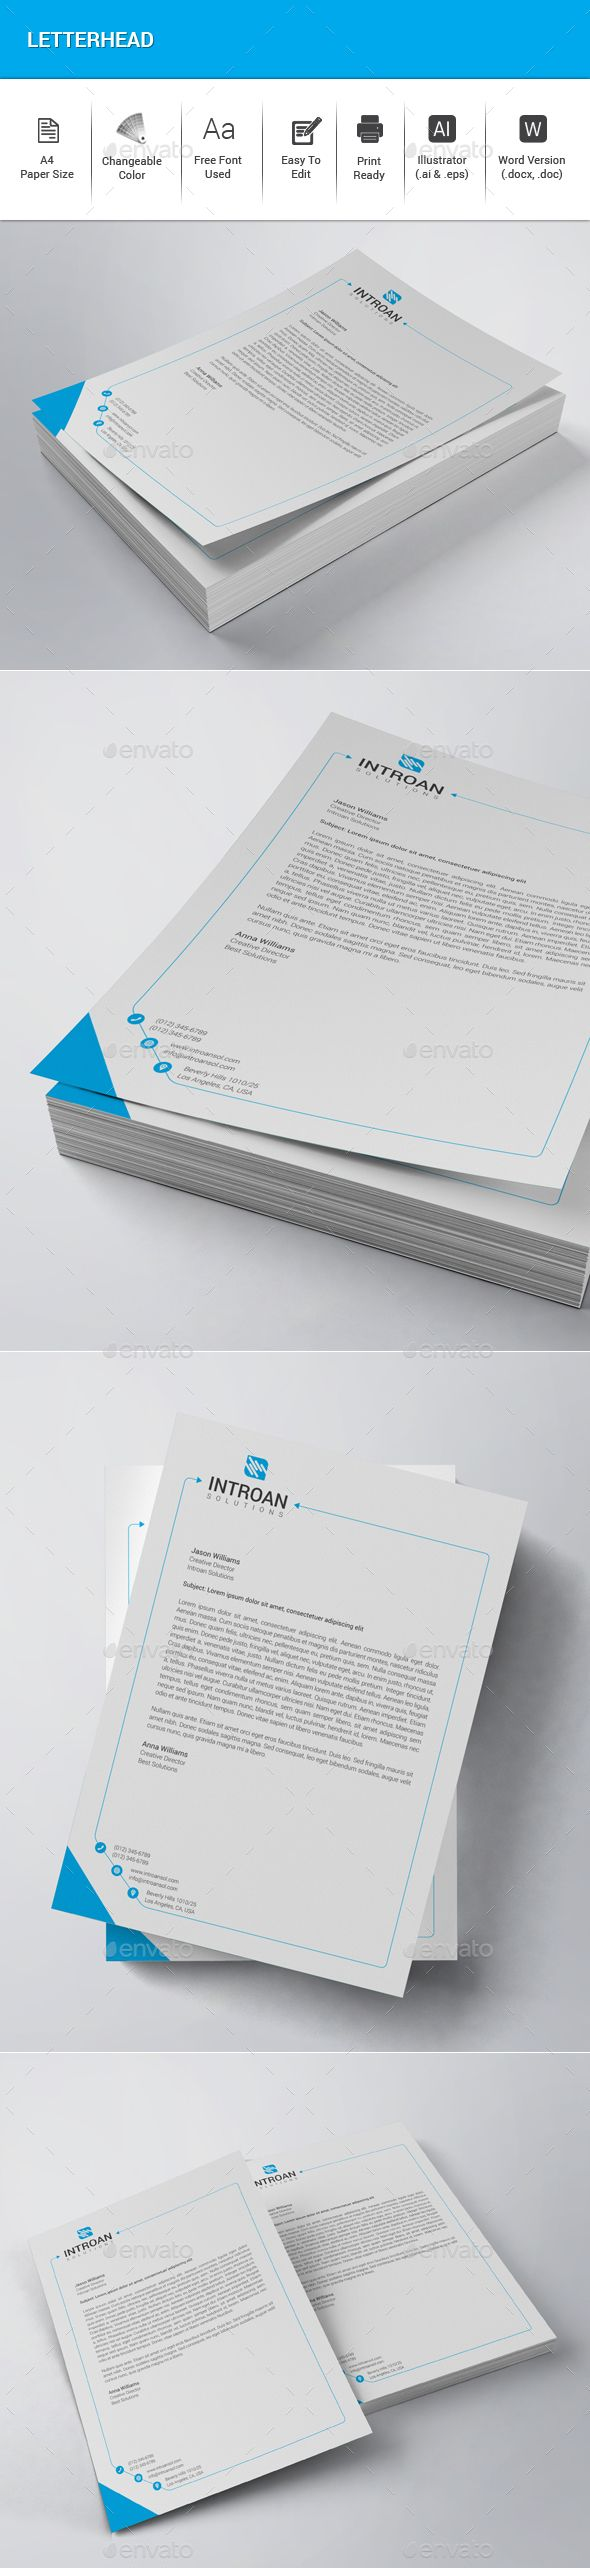 Letterhead Template Vector EPS, AI Illustrator, DOCX & DOC